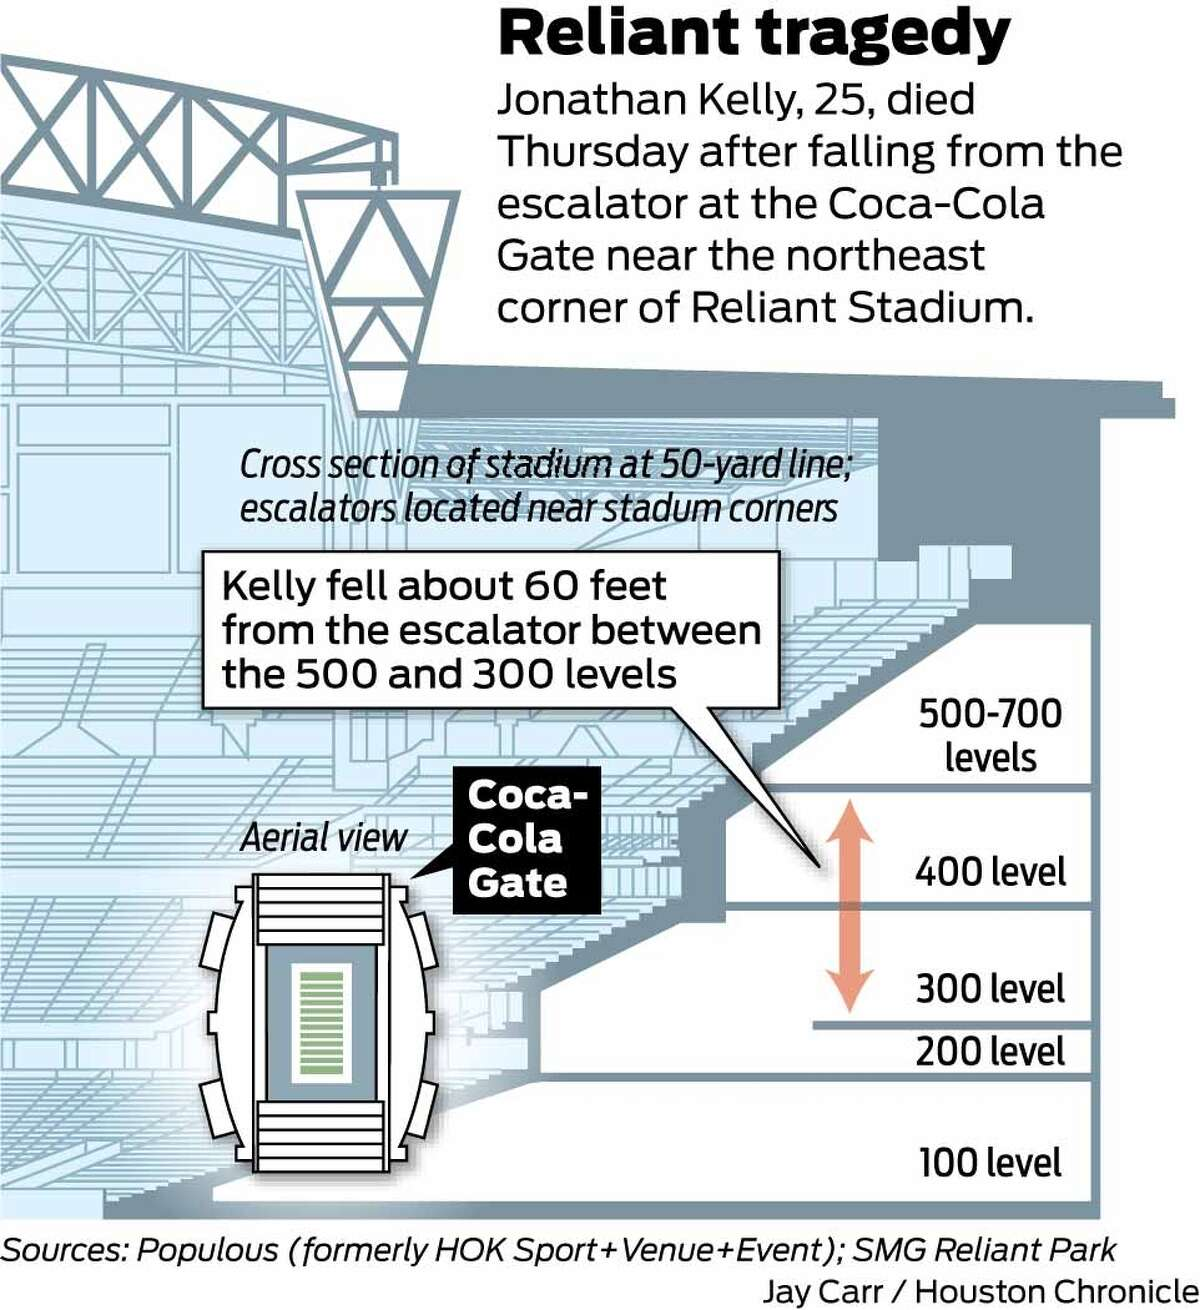 This schematic details the height from which Jonathan Kelly fell Thursday from an escalator at Reliant Stadium.